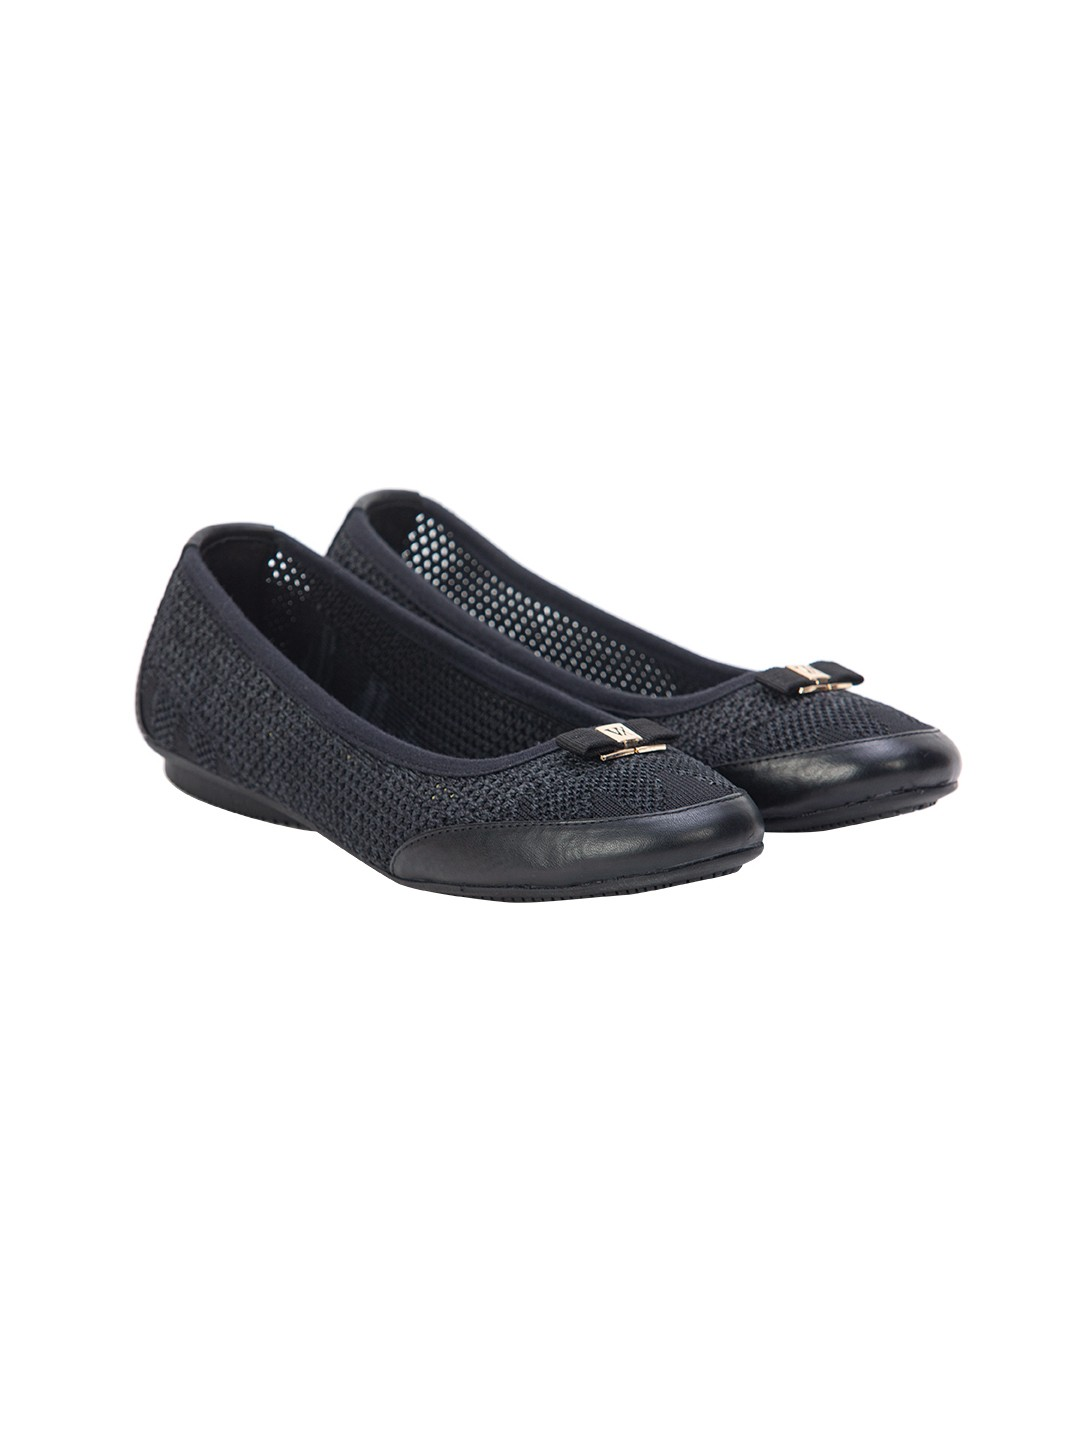 Buy Von Wellx Anise Comfort Black Belly Online in West Bengal